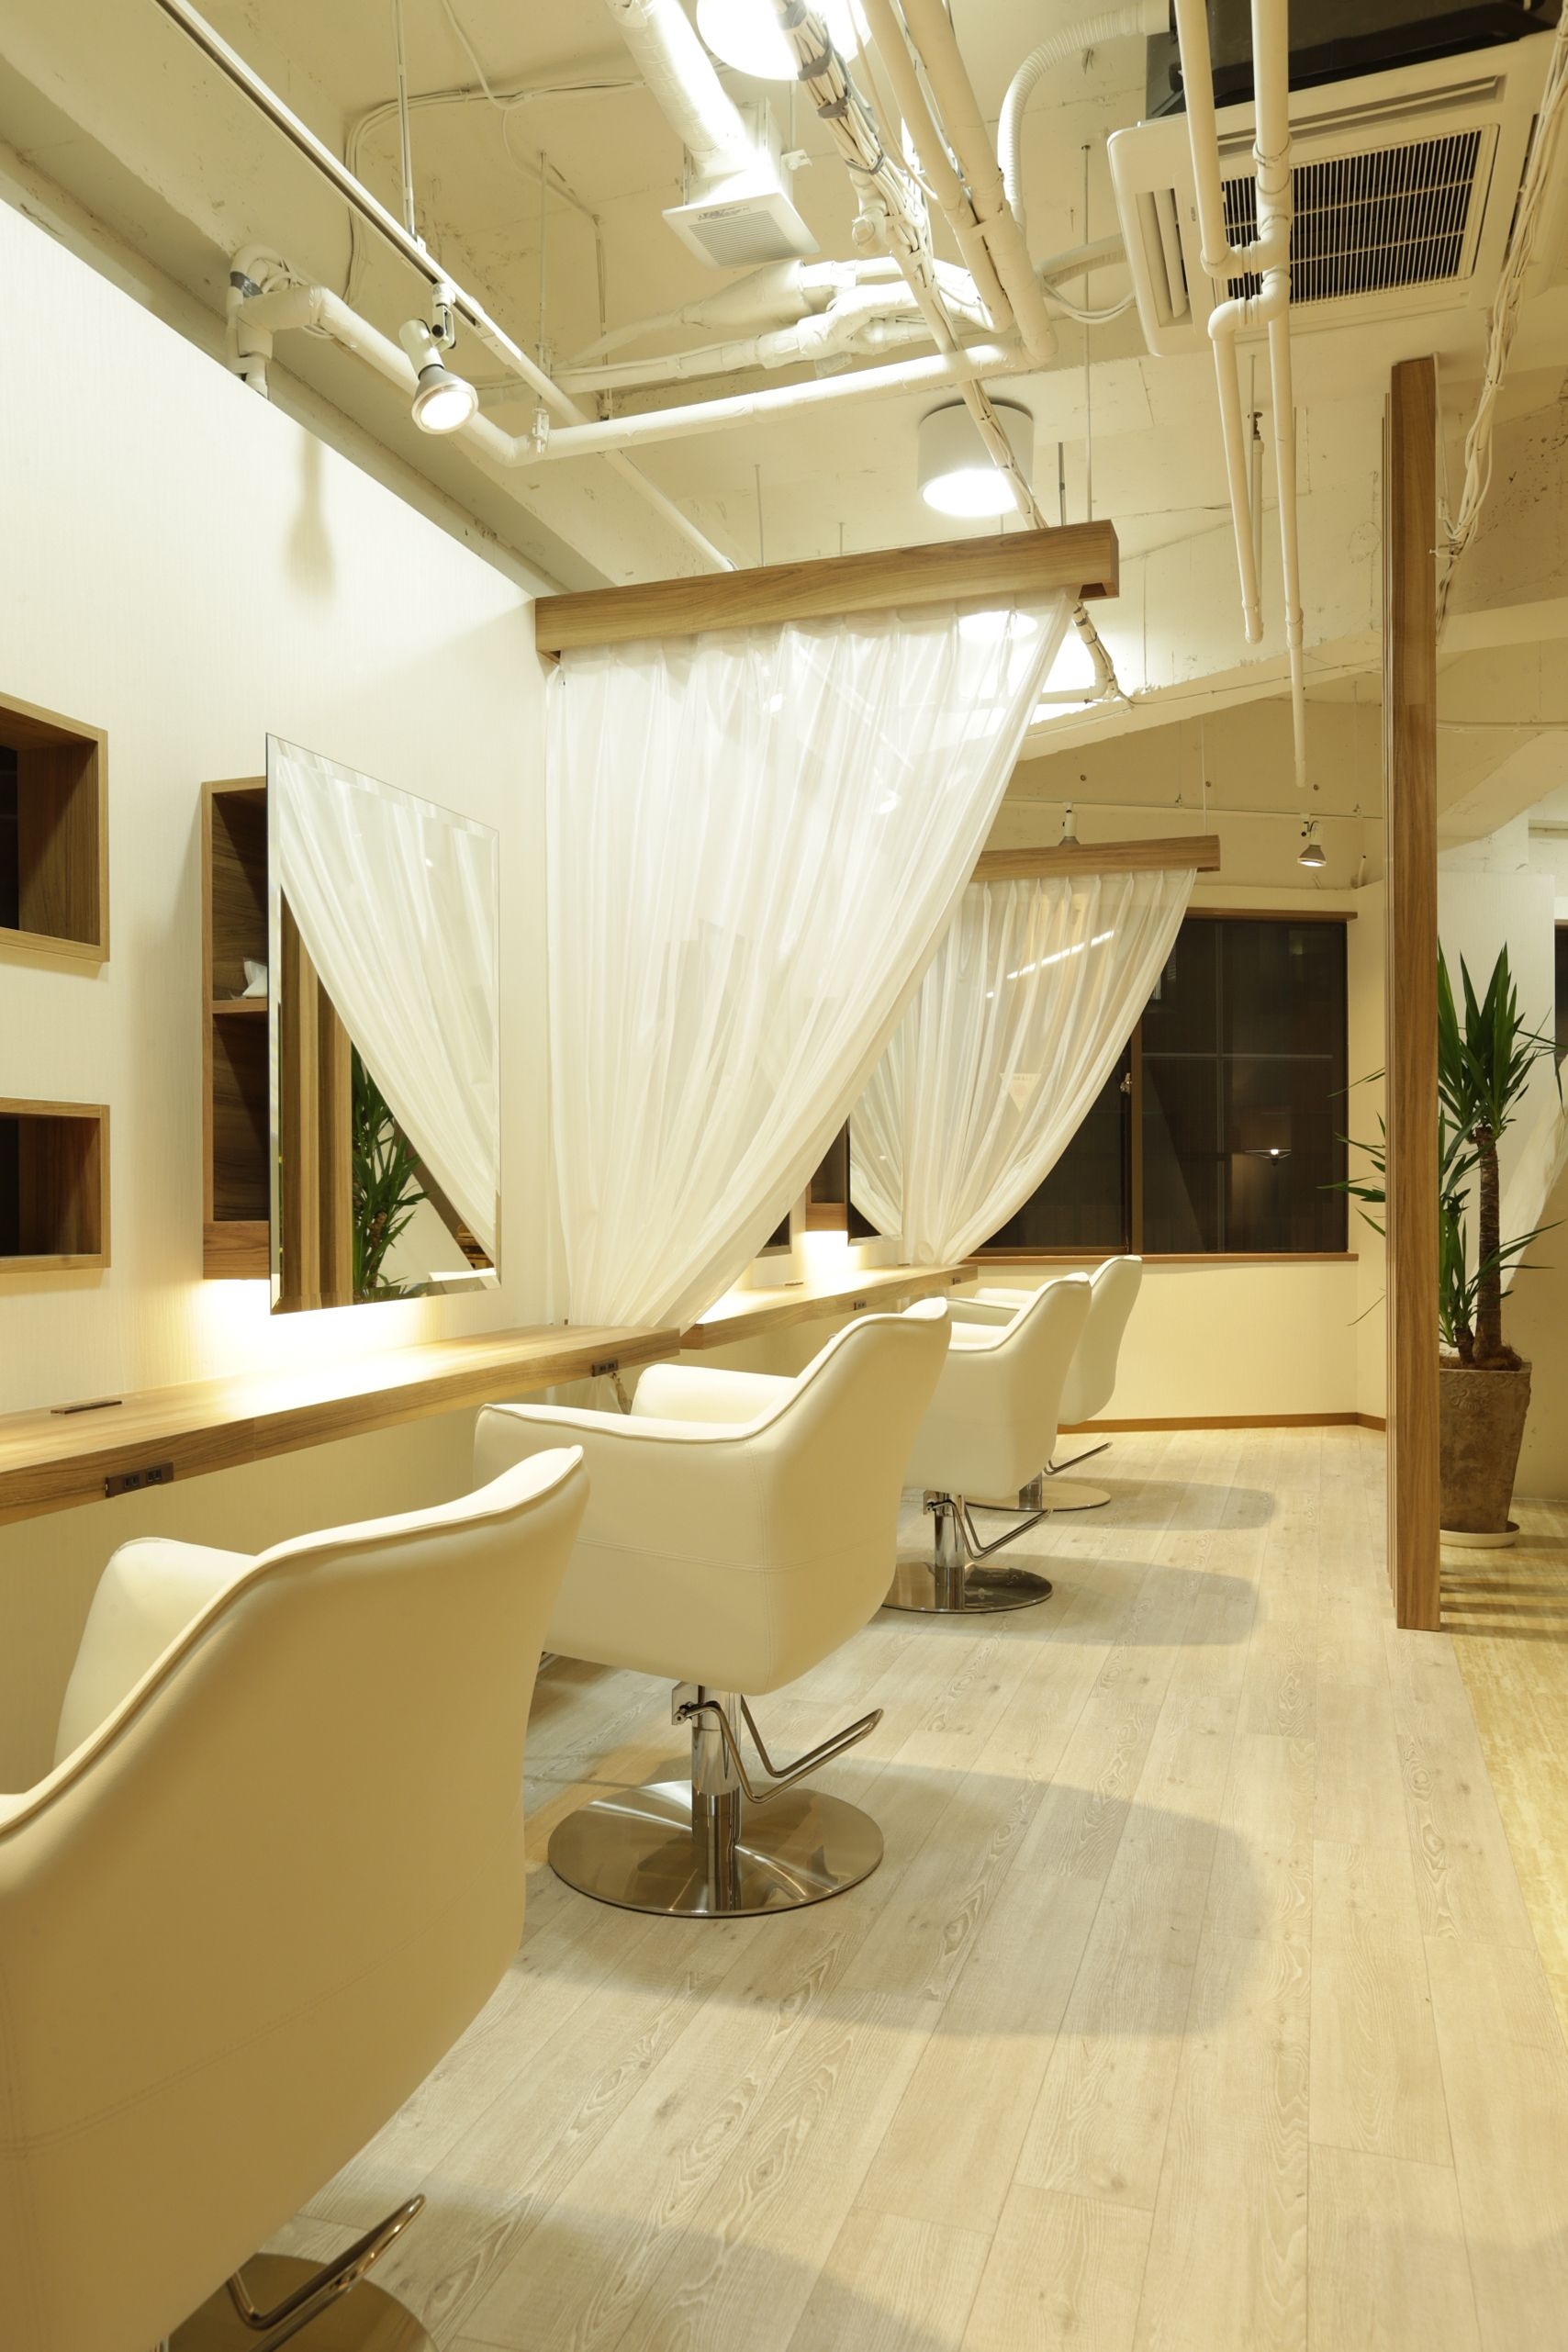 beauty salon interior design ideas chairs mirrors space decor japan - Beauty Salon Interior Design Ideas